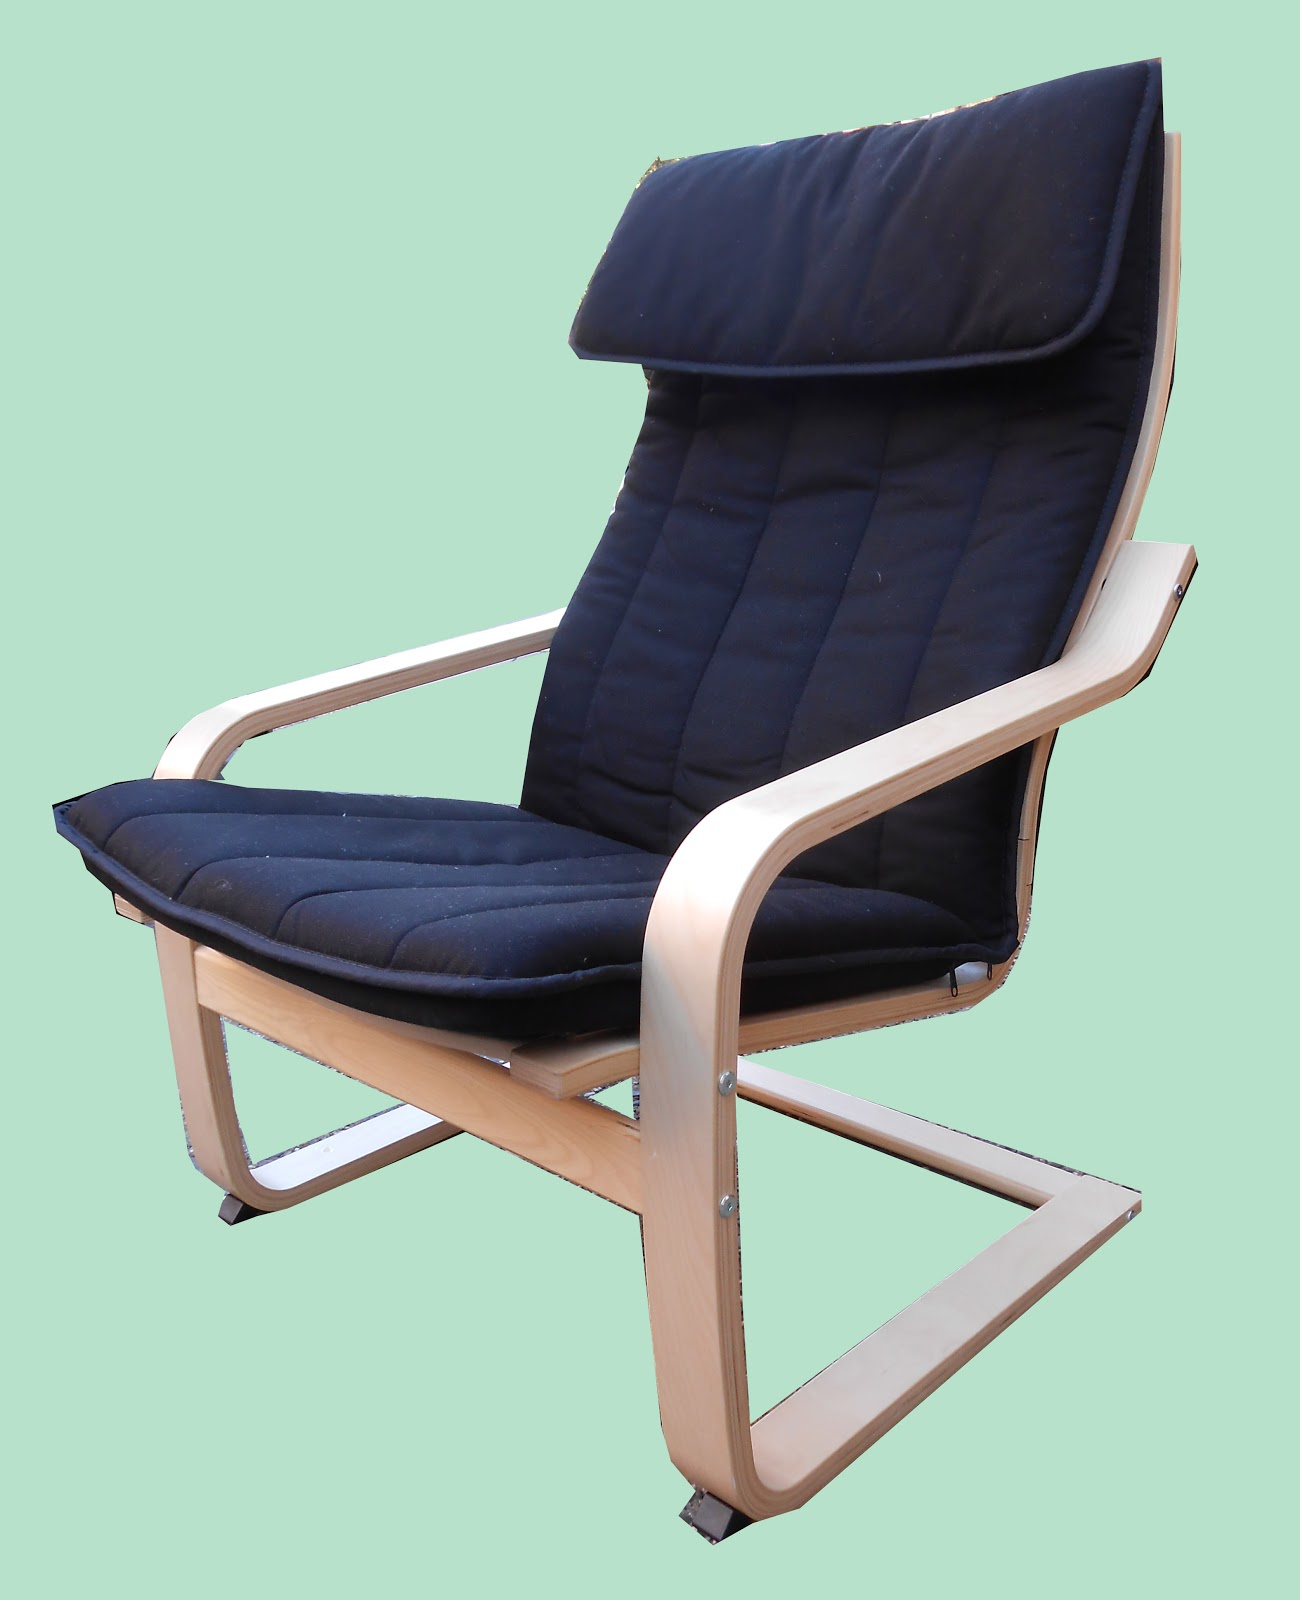 Ikea Lounge Chair Uhuru Furniture And Collectibles Ikea Poang Lounge Chair Sold